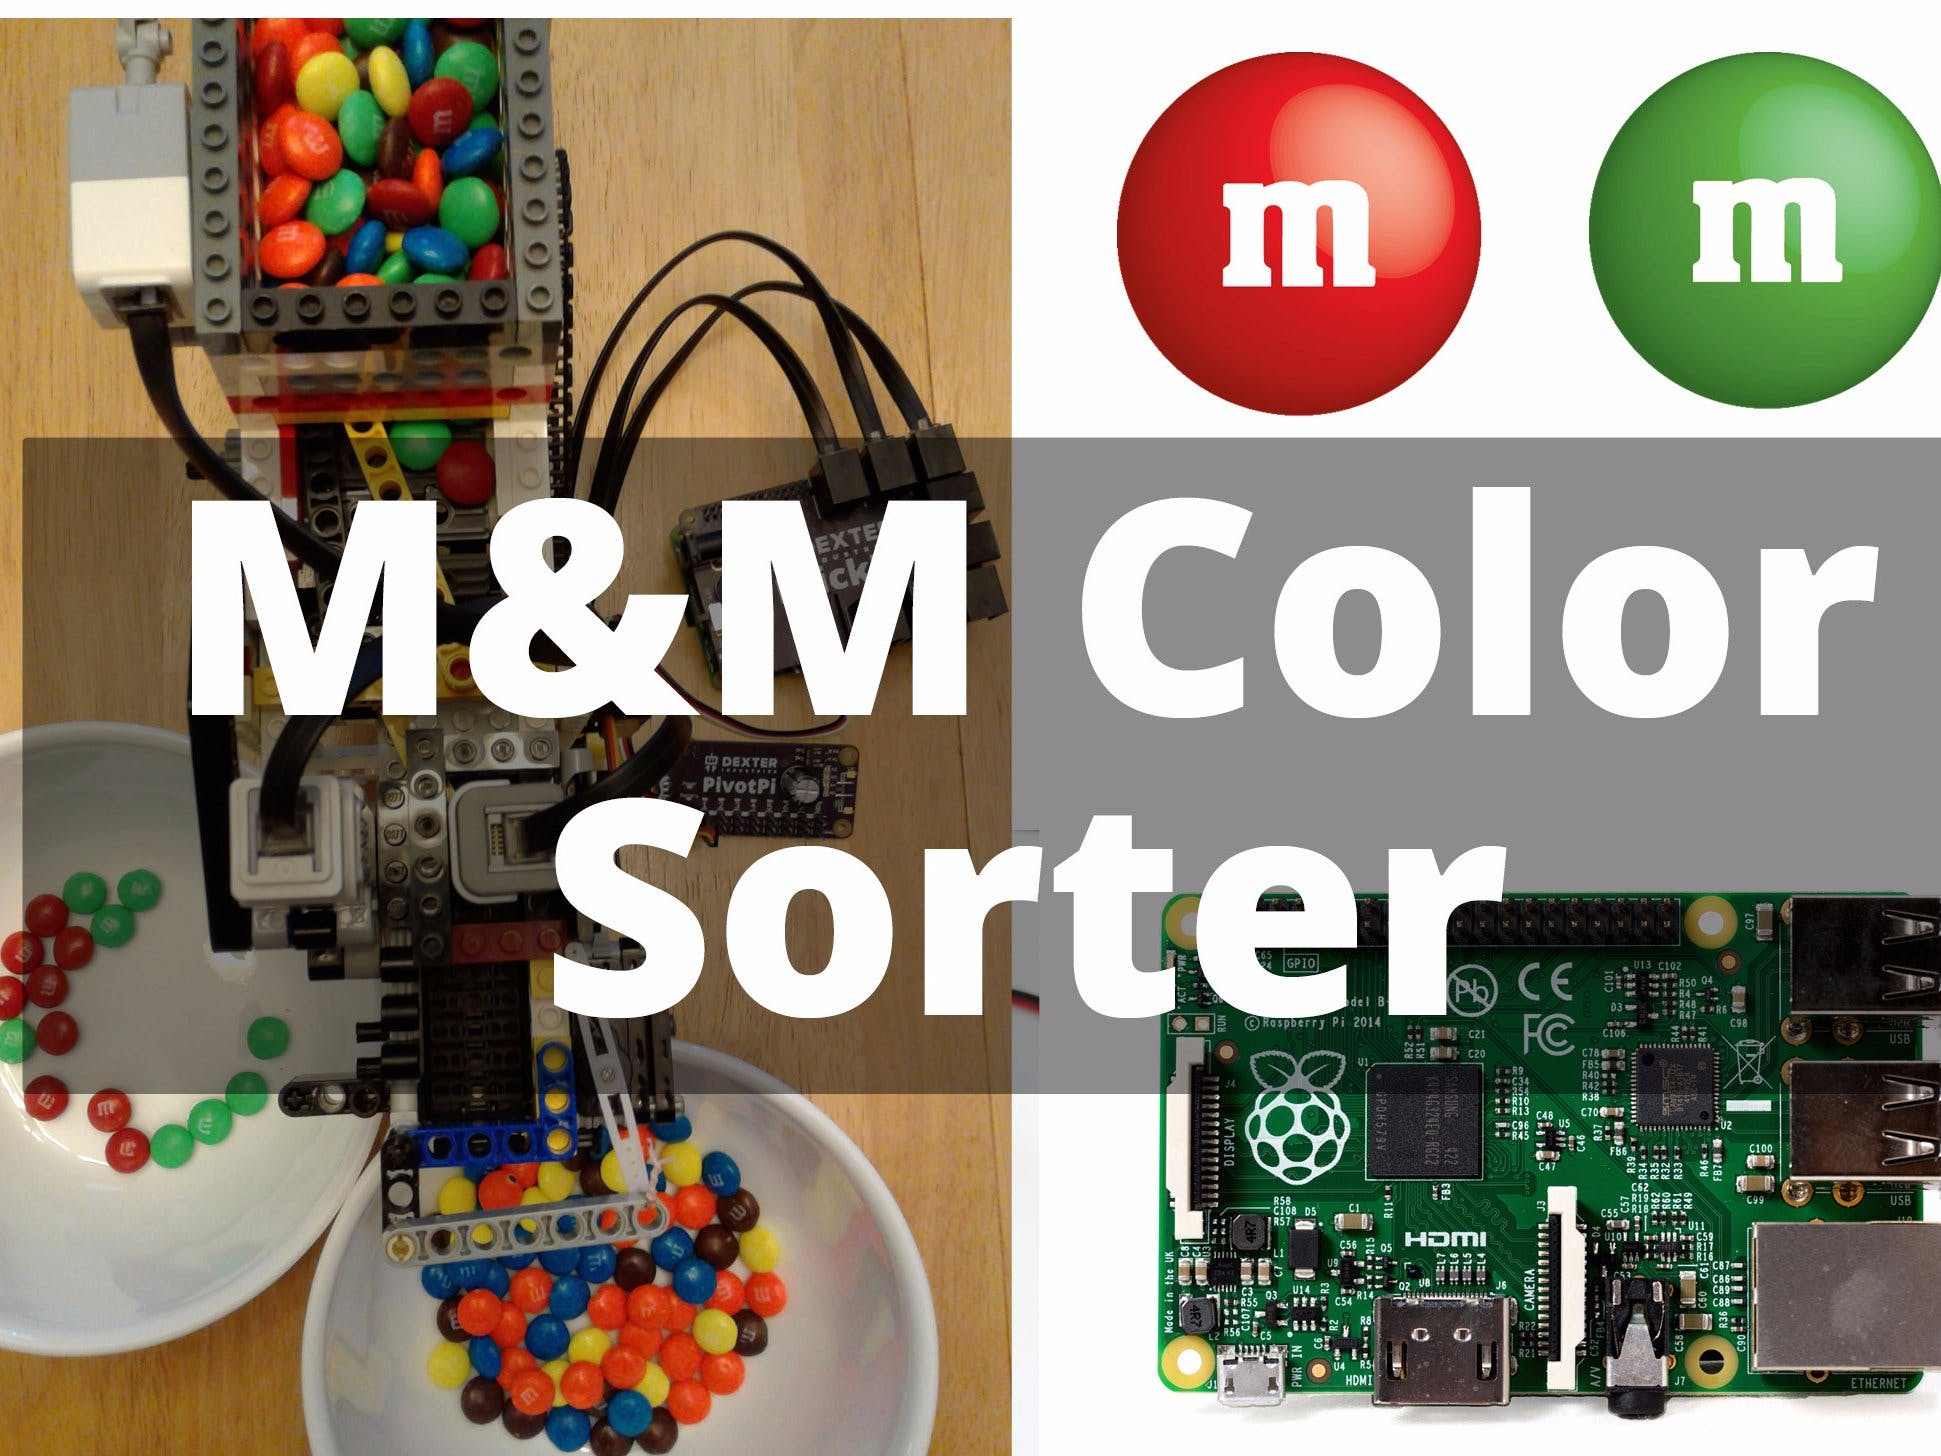 Raspberry Pi M&M Sorter